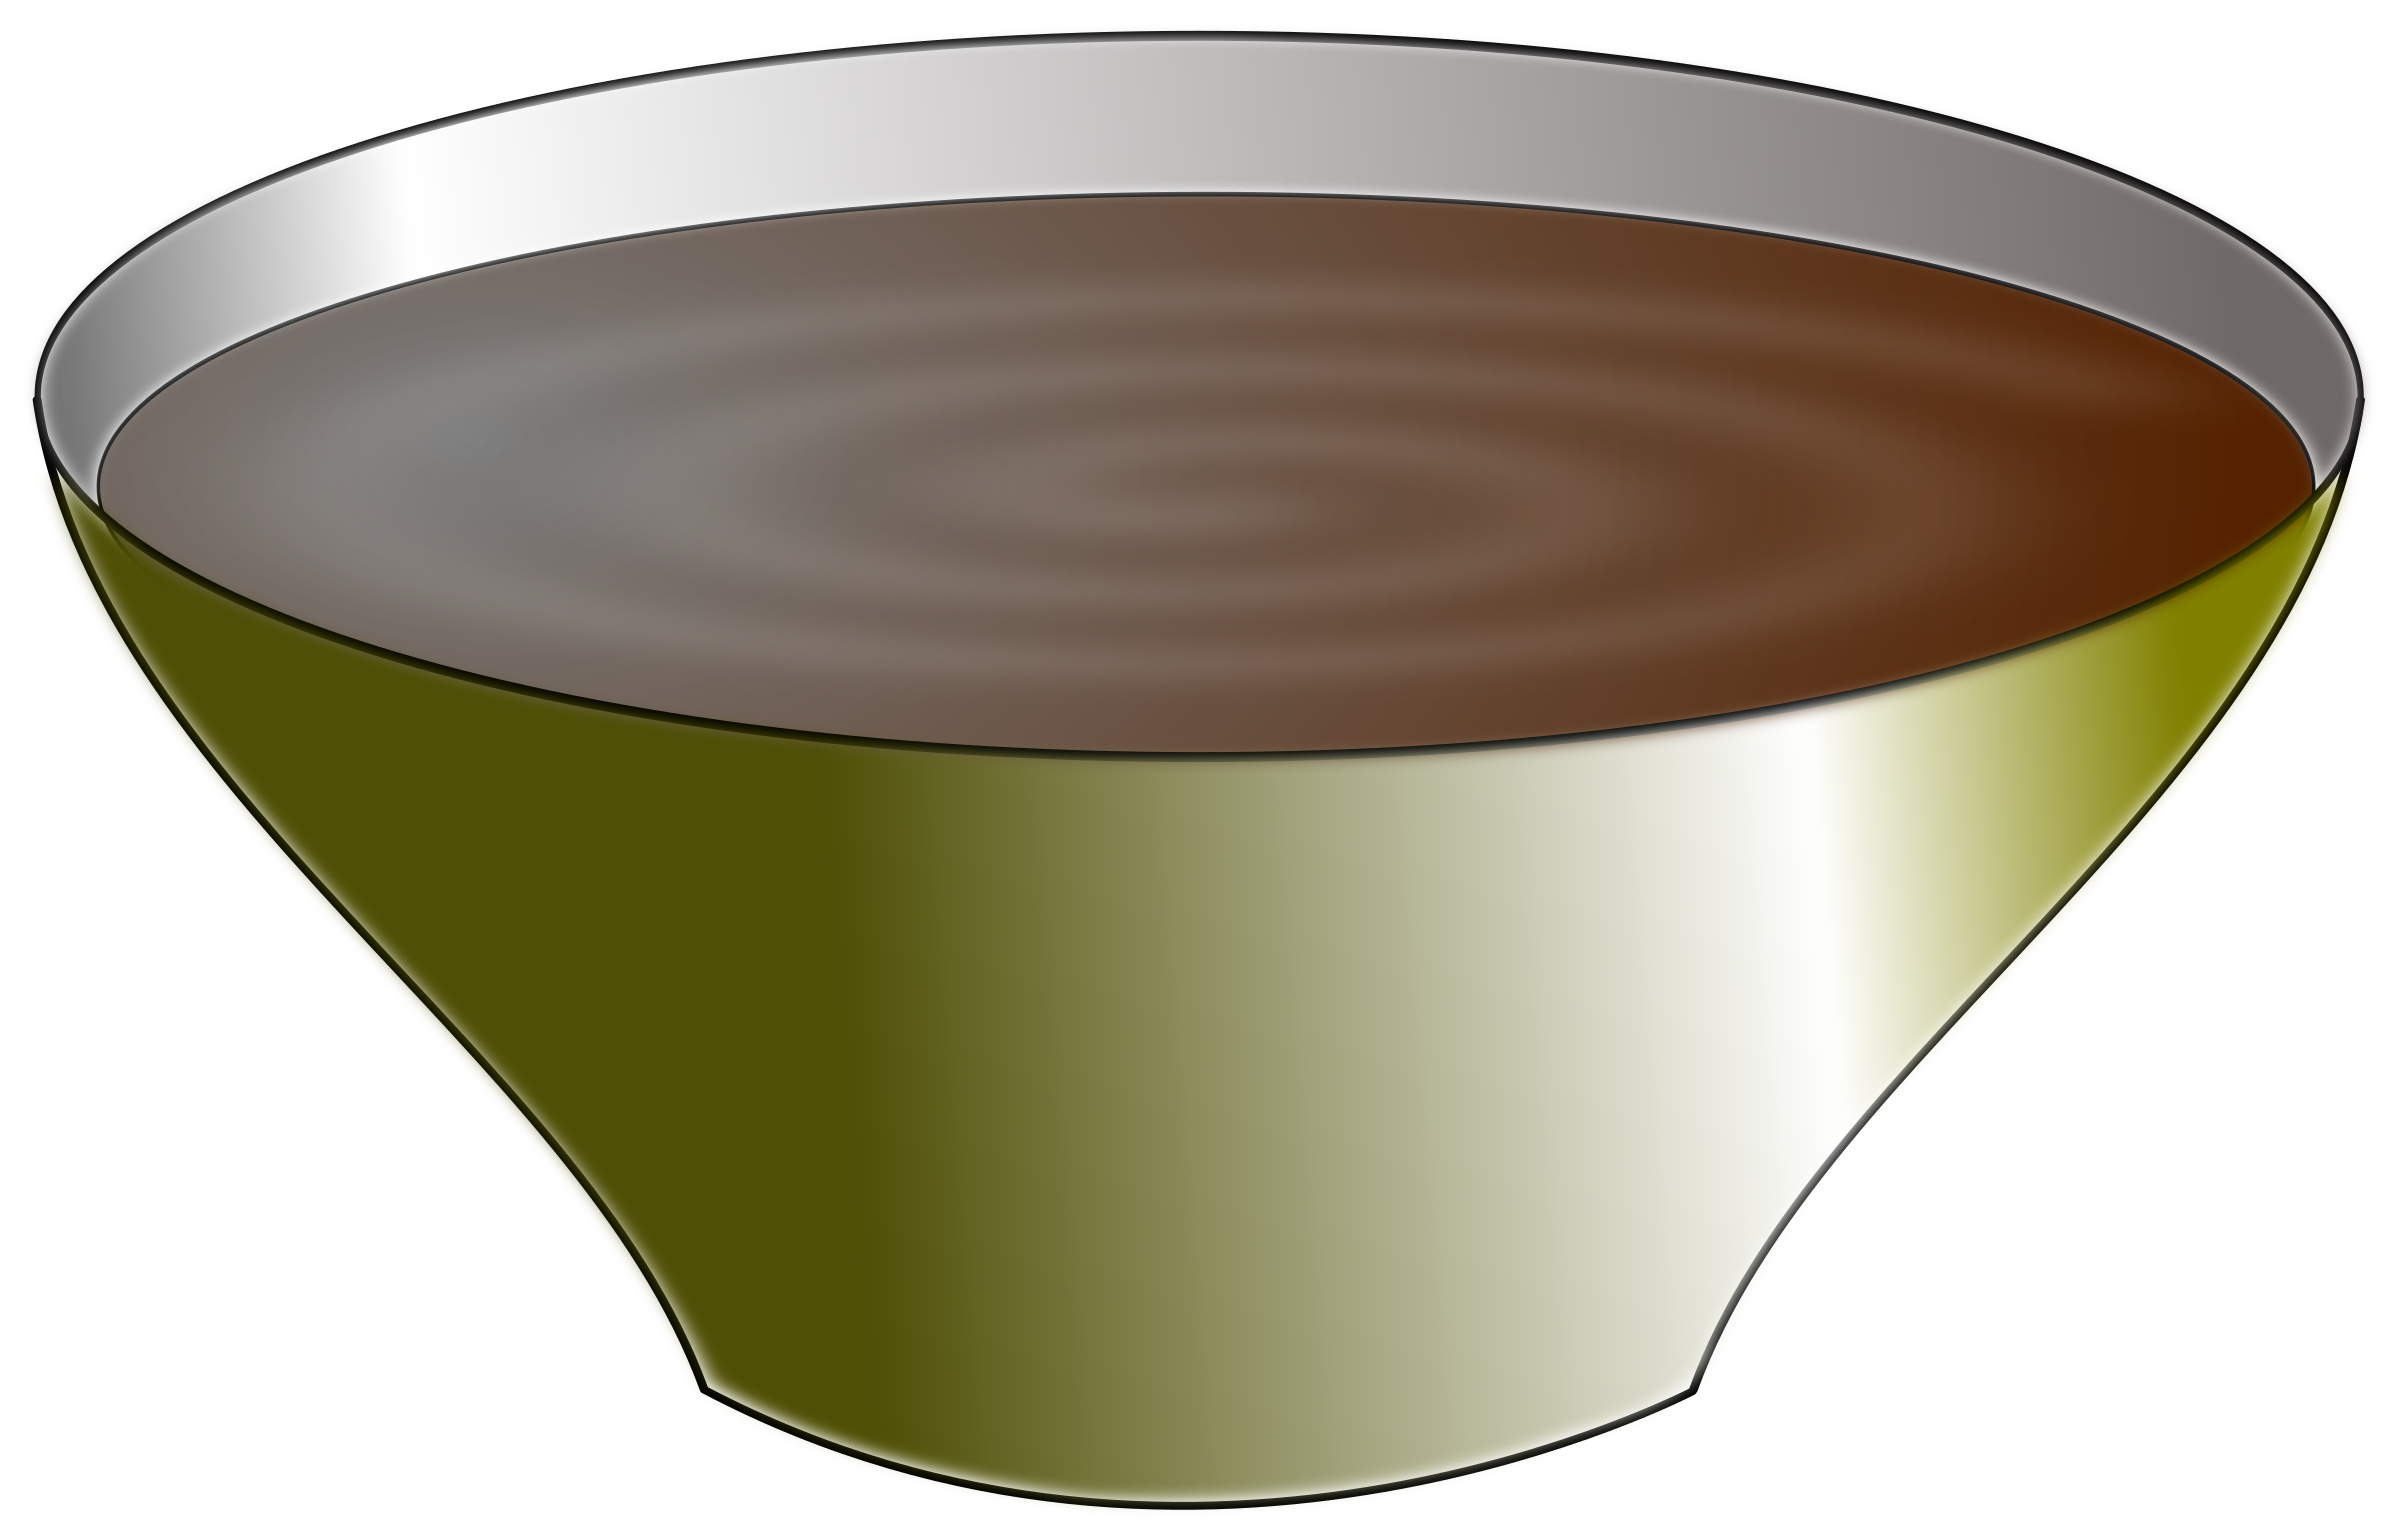 Bowl with Soup vector clipart image.